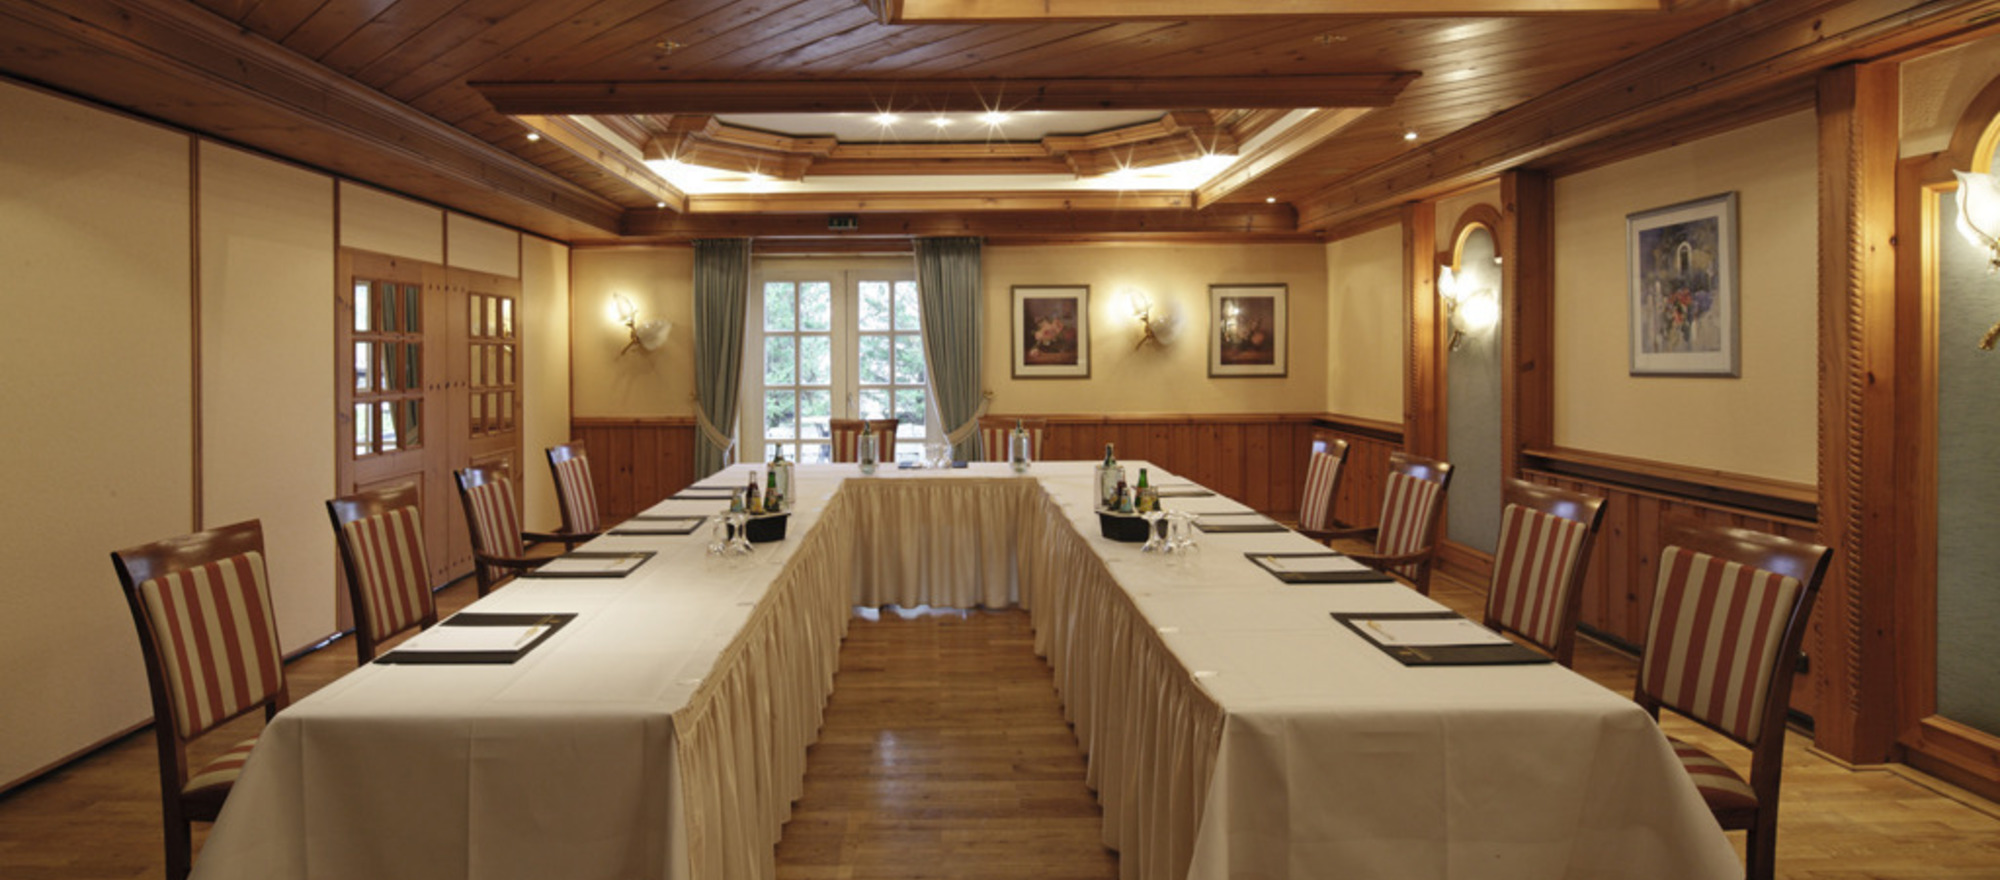 Noble event room at the 3-star hotel Ringhotel Germanenhof in Steinheim-Sandebeck